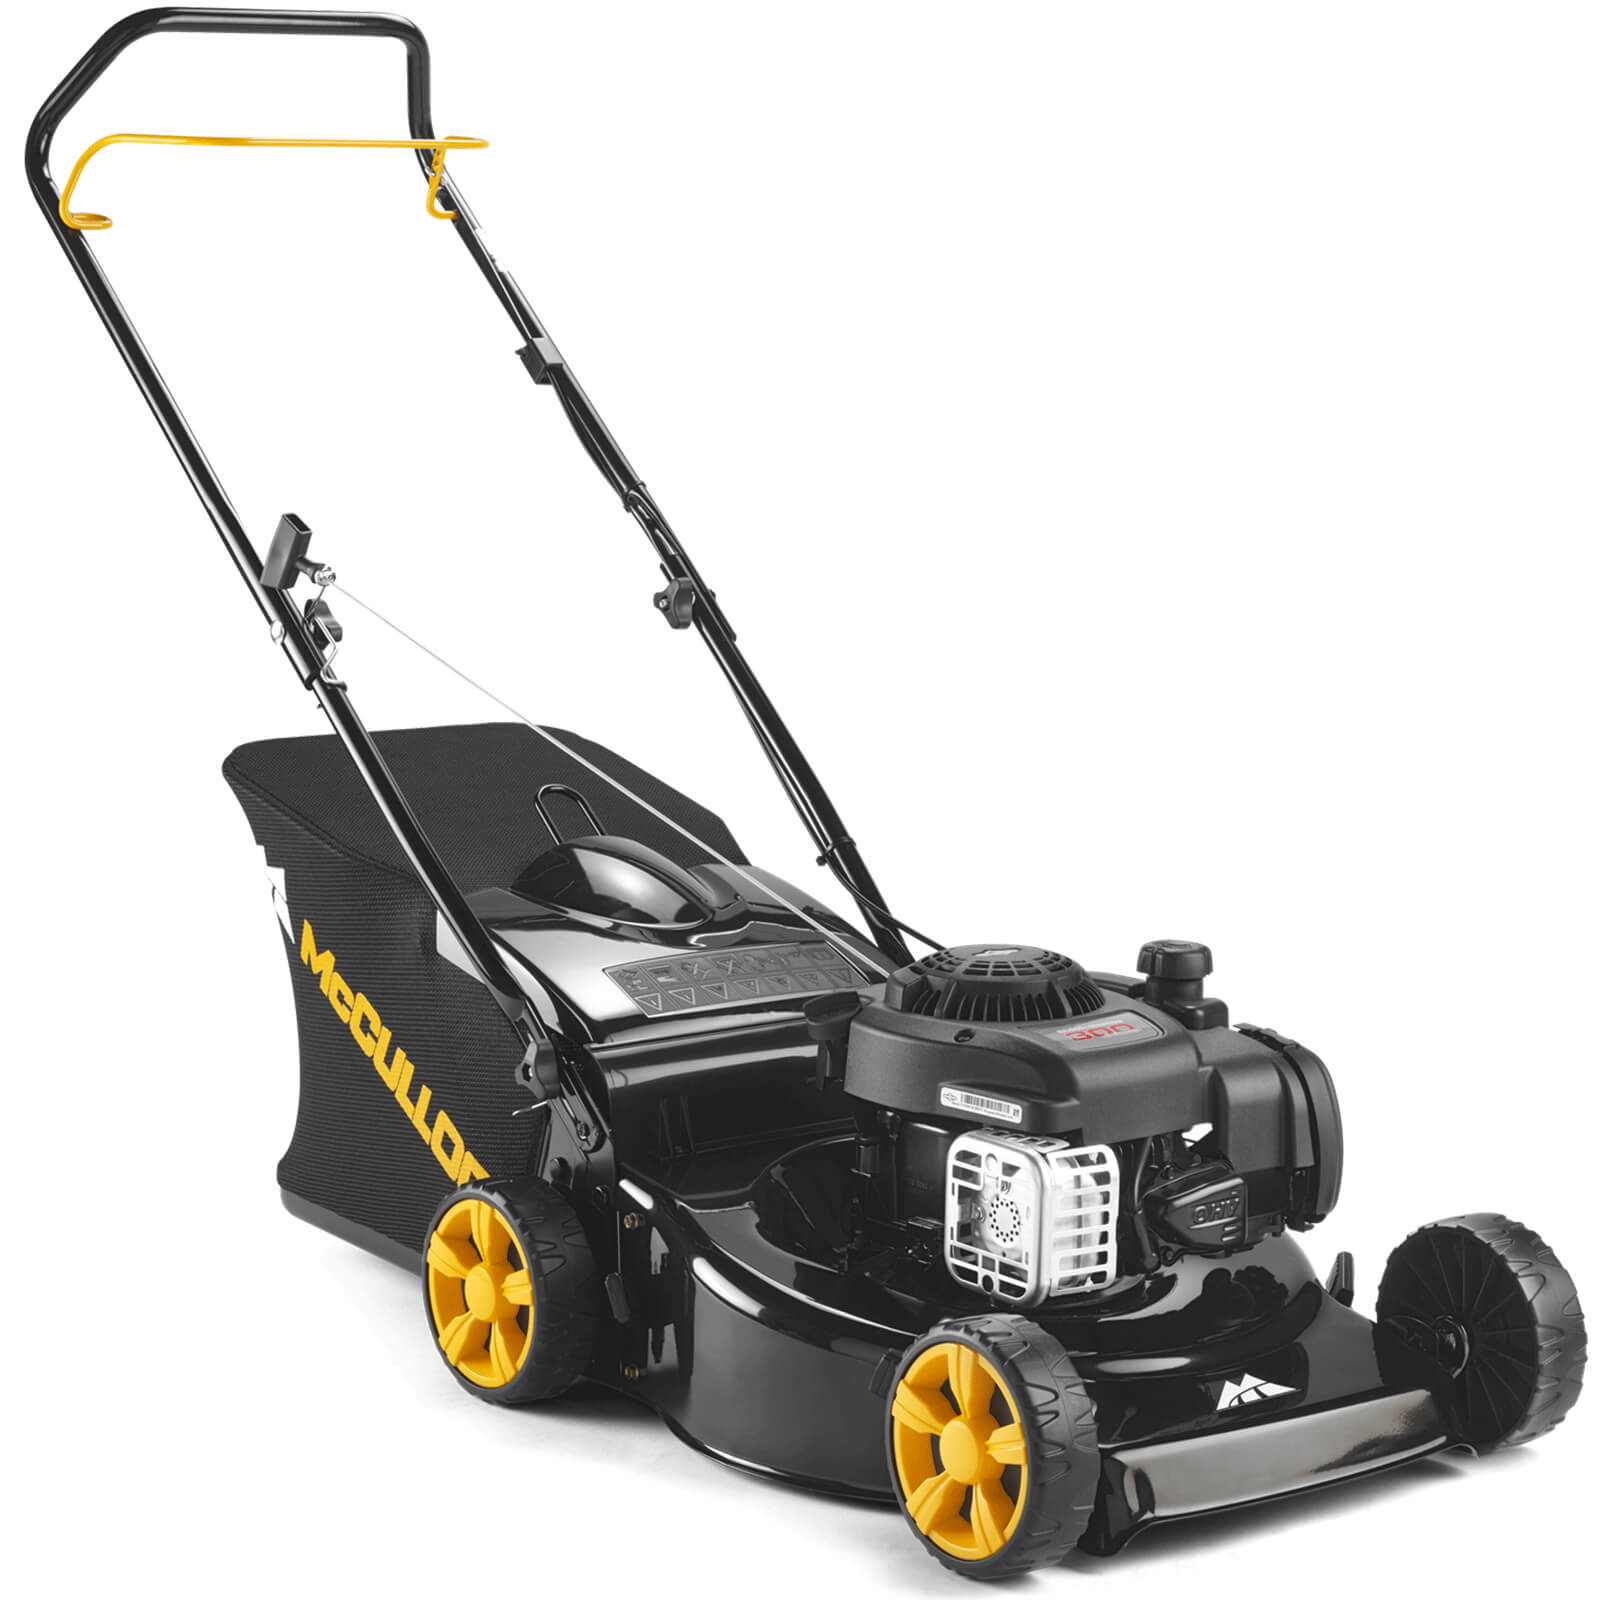 Image of McCulloch M46-125 CLASSIC PLUS Push Petrol Rotary Lawnmower 460mm